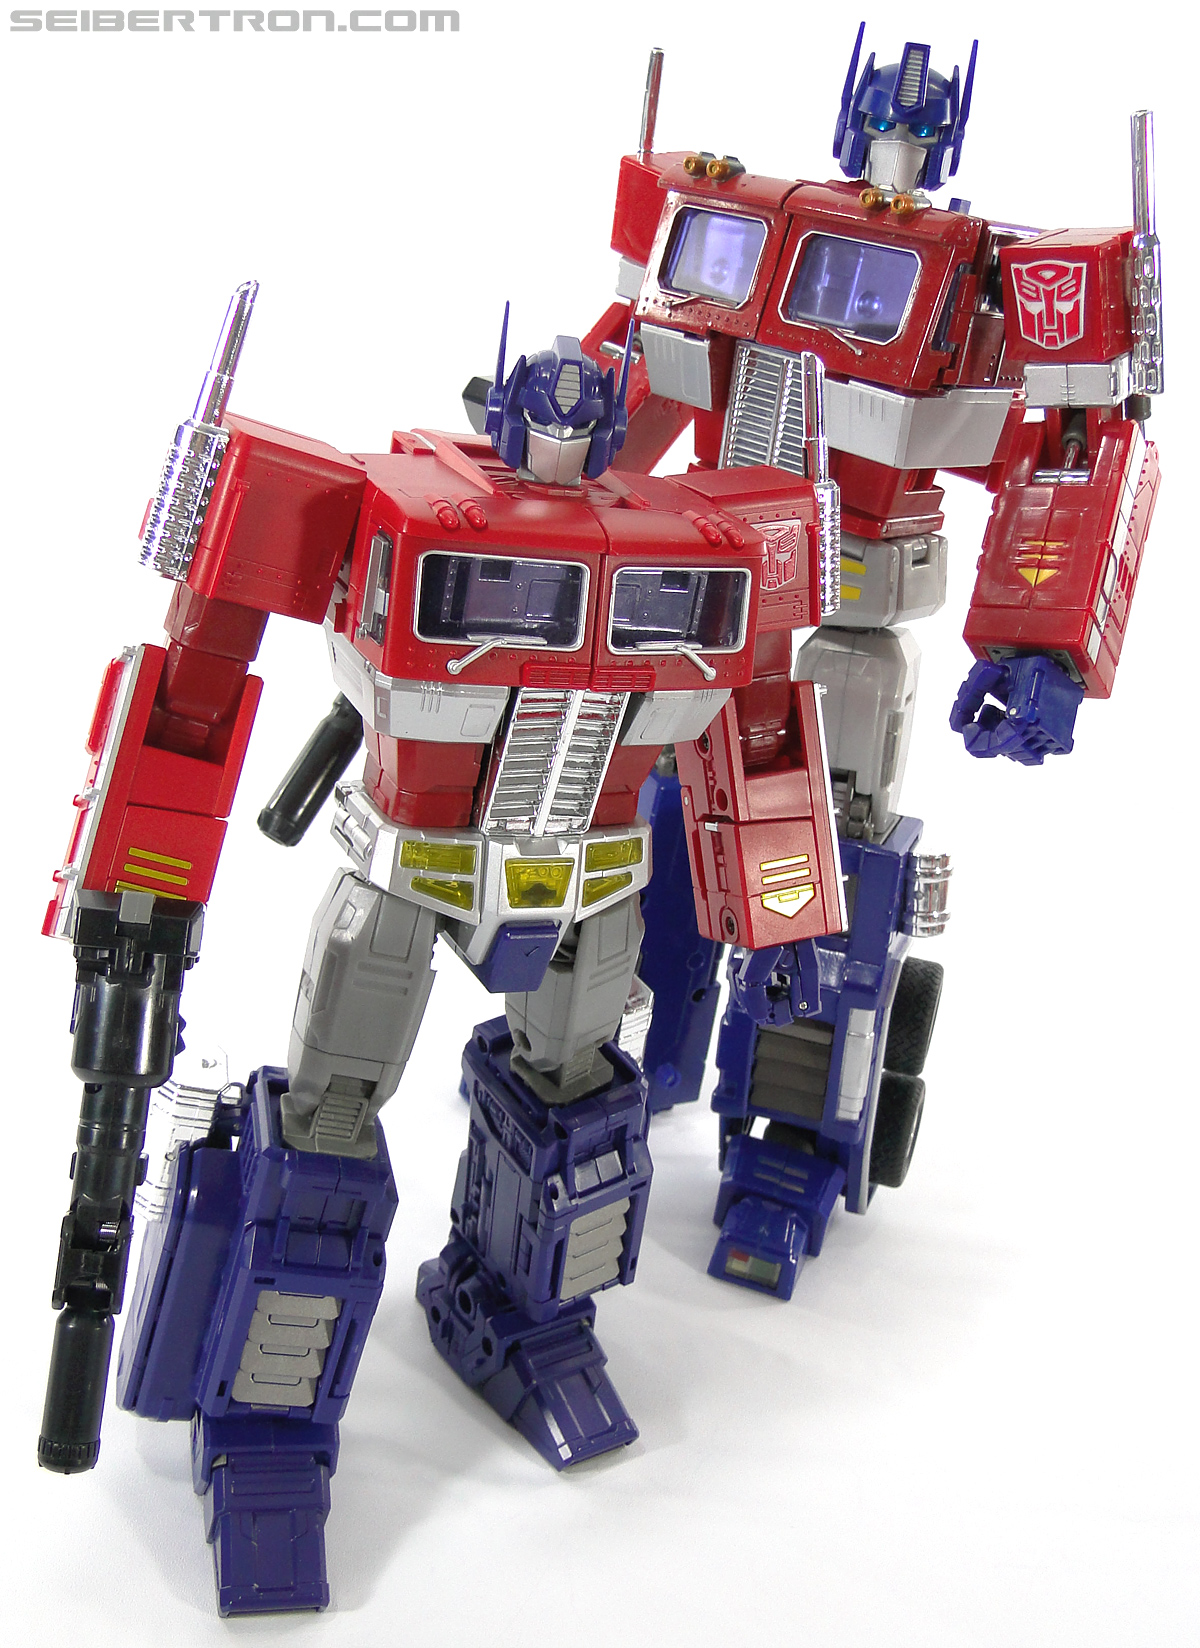 Transformers Masterpiece Optimus Prime (MP-10) (Convoy) (Image #417 of 429)